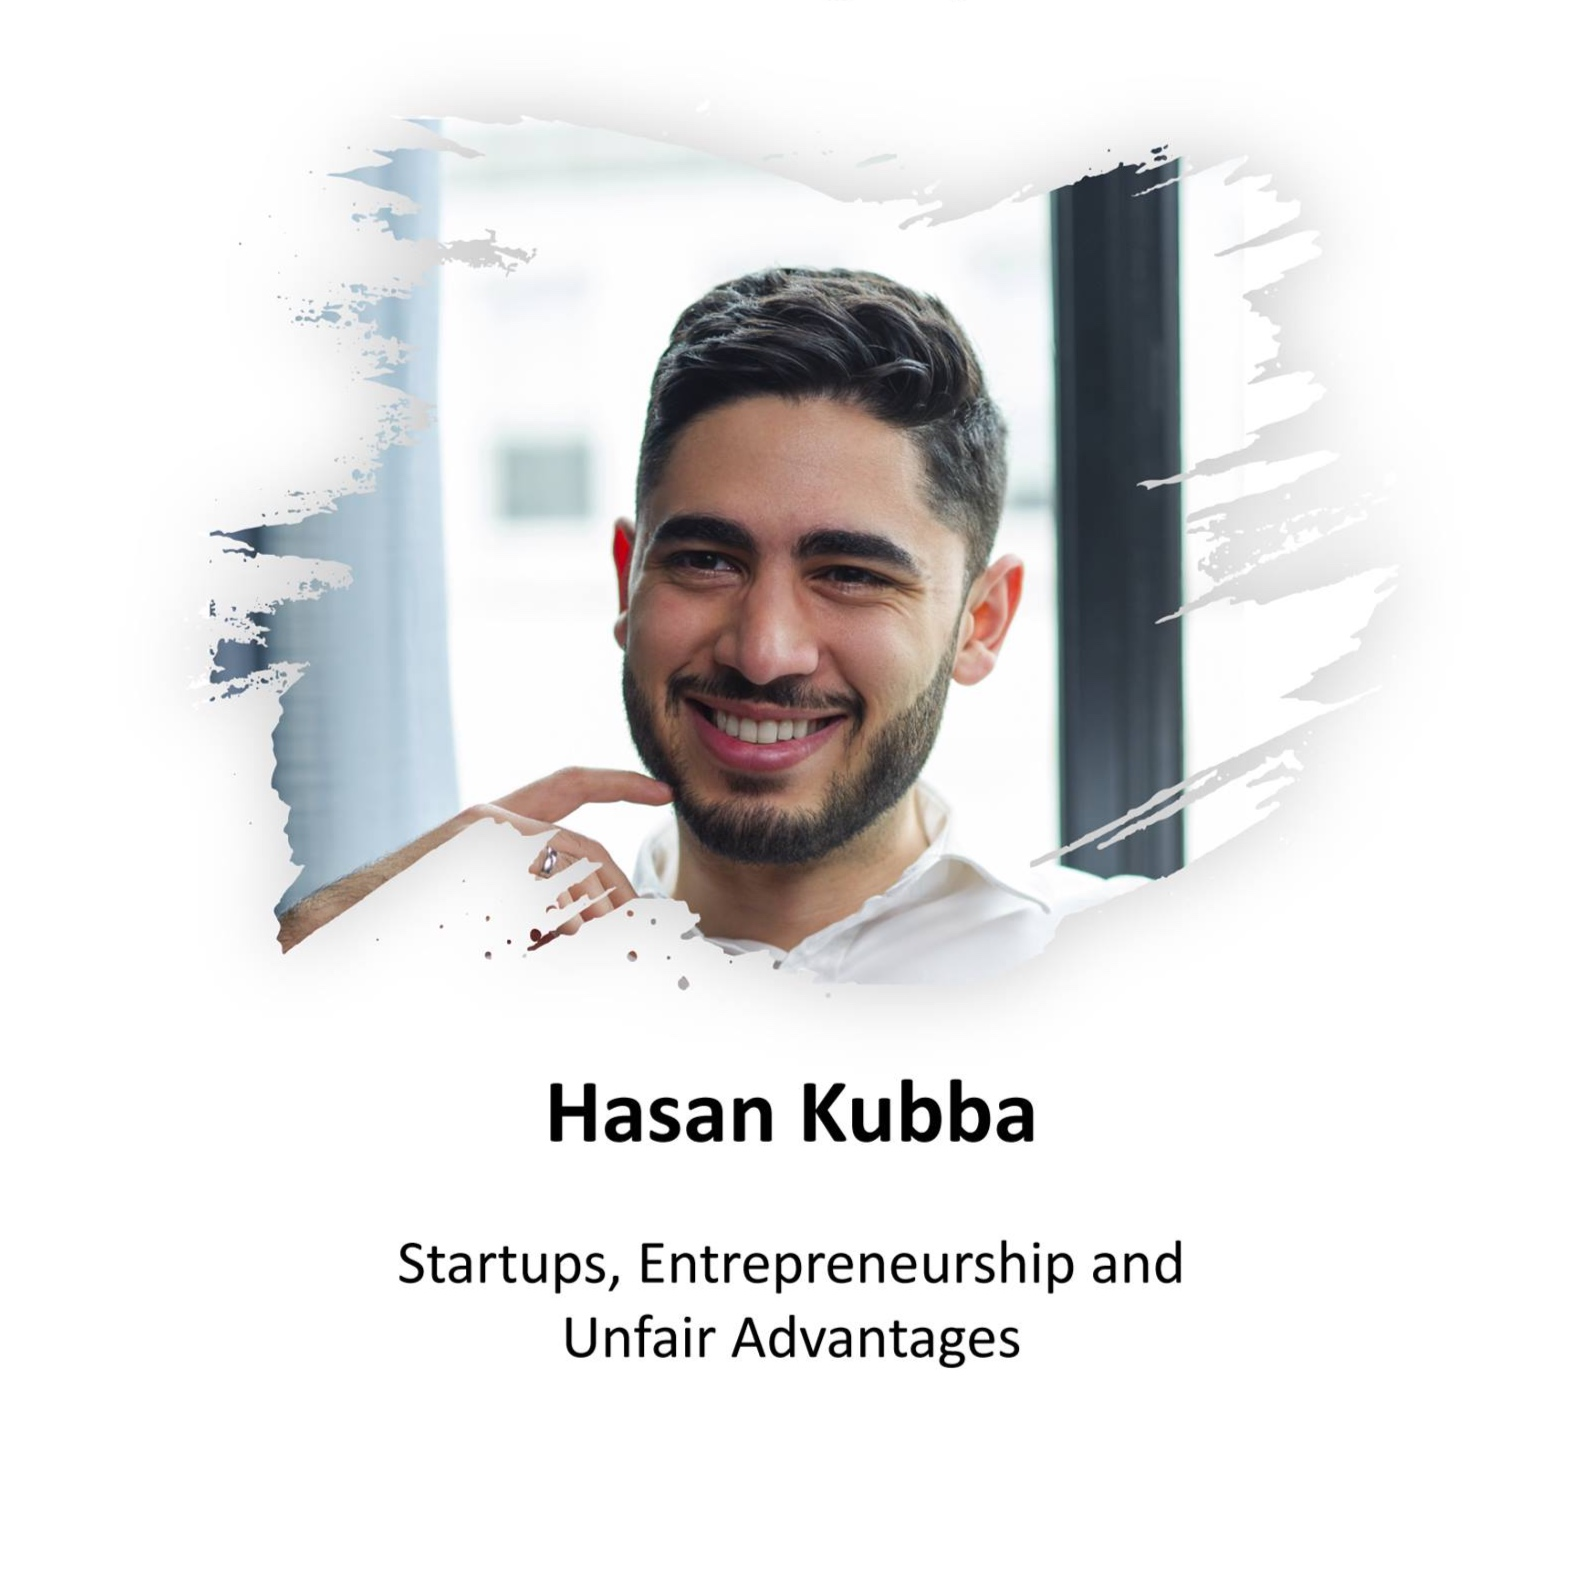 Author, entrepreneur and startup strategist, Hasan Kubba is a specialist in technology startups, growth marketing and fundraising. With his own London-based digital marketing business and startup investment experience, Hasan is particularly strong at breaking down complex business concepts into simple and effective strategies and tactics. He is passionate about the future of tech entrepreneurship, digital disruption and inequality, and is an in-demand startup mentor to early-stage entrepreneurs, a corporate workshop trainer, and international speaker. His new book 'The Unfair Advantage - The Truth About Startup Success' co-authored with startup legend and angel investor Ash Ali (the first marketing director of Just Eat which IPO'd for $2.44 billion) is out later in 2019.